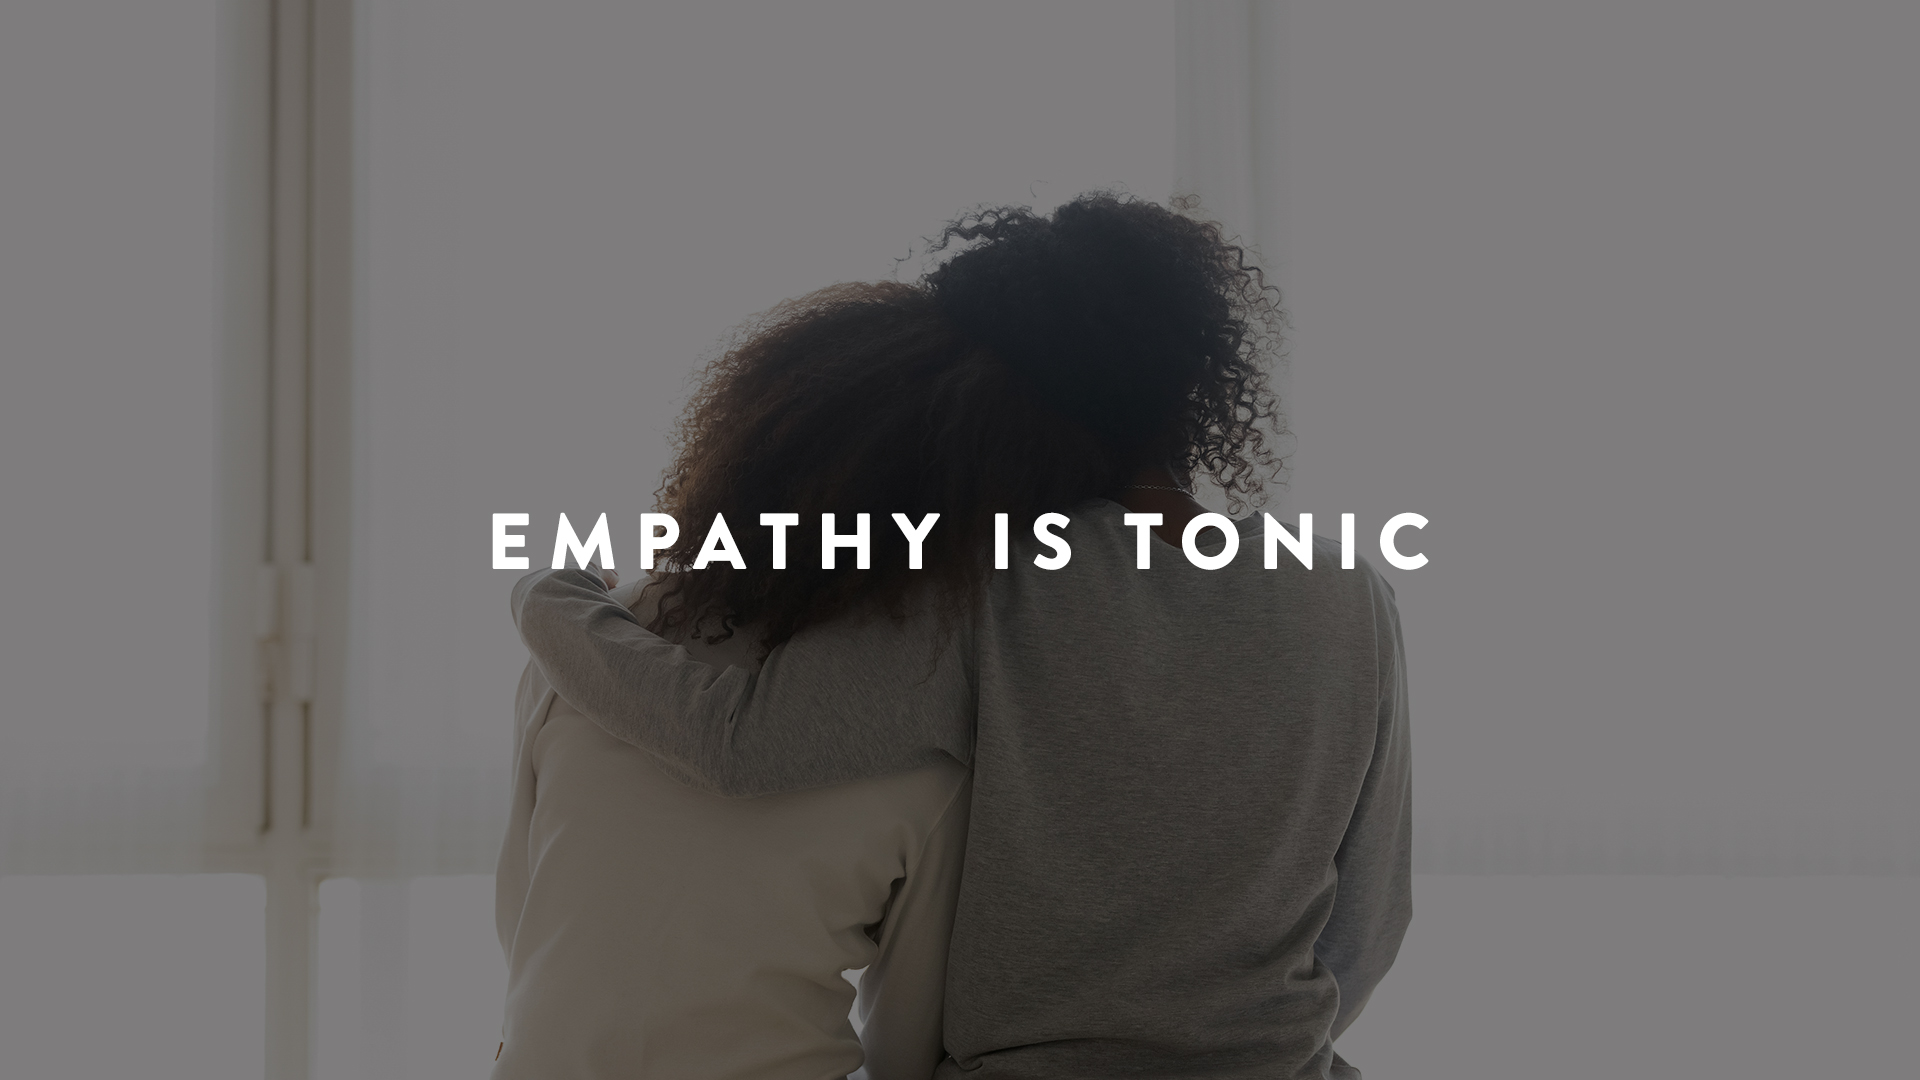 Empathy is tonic